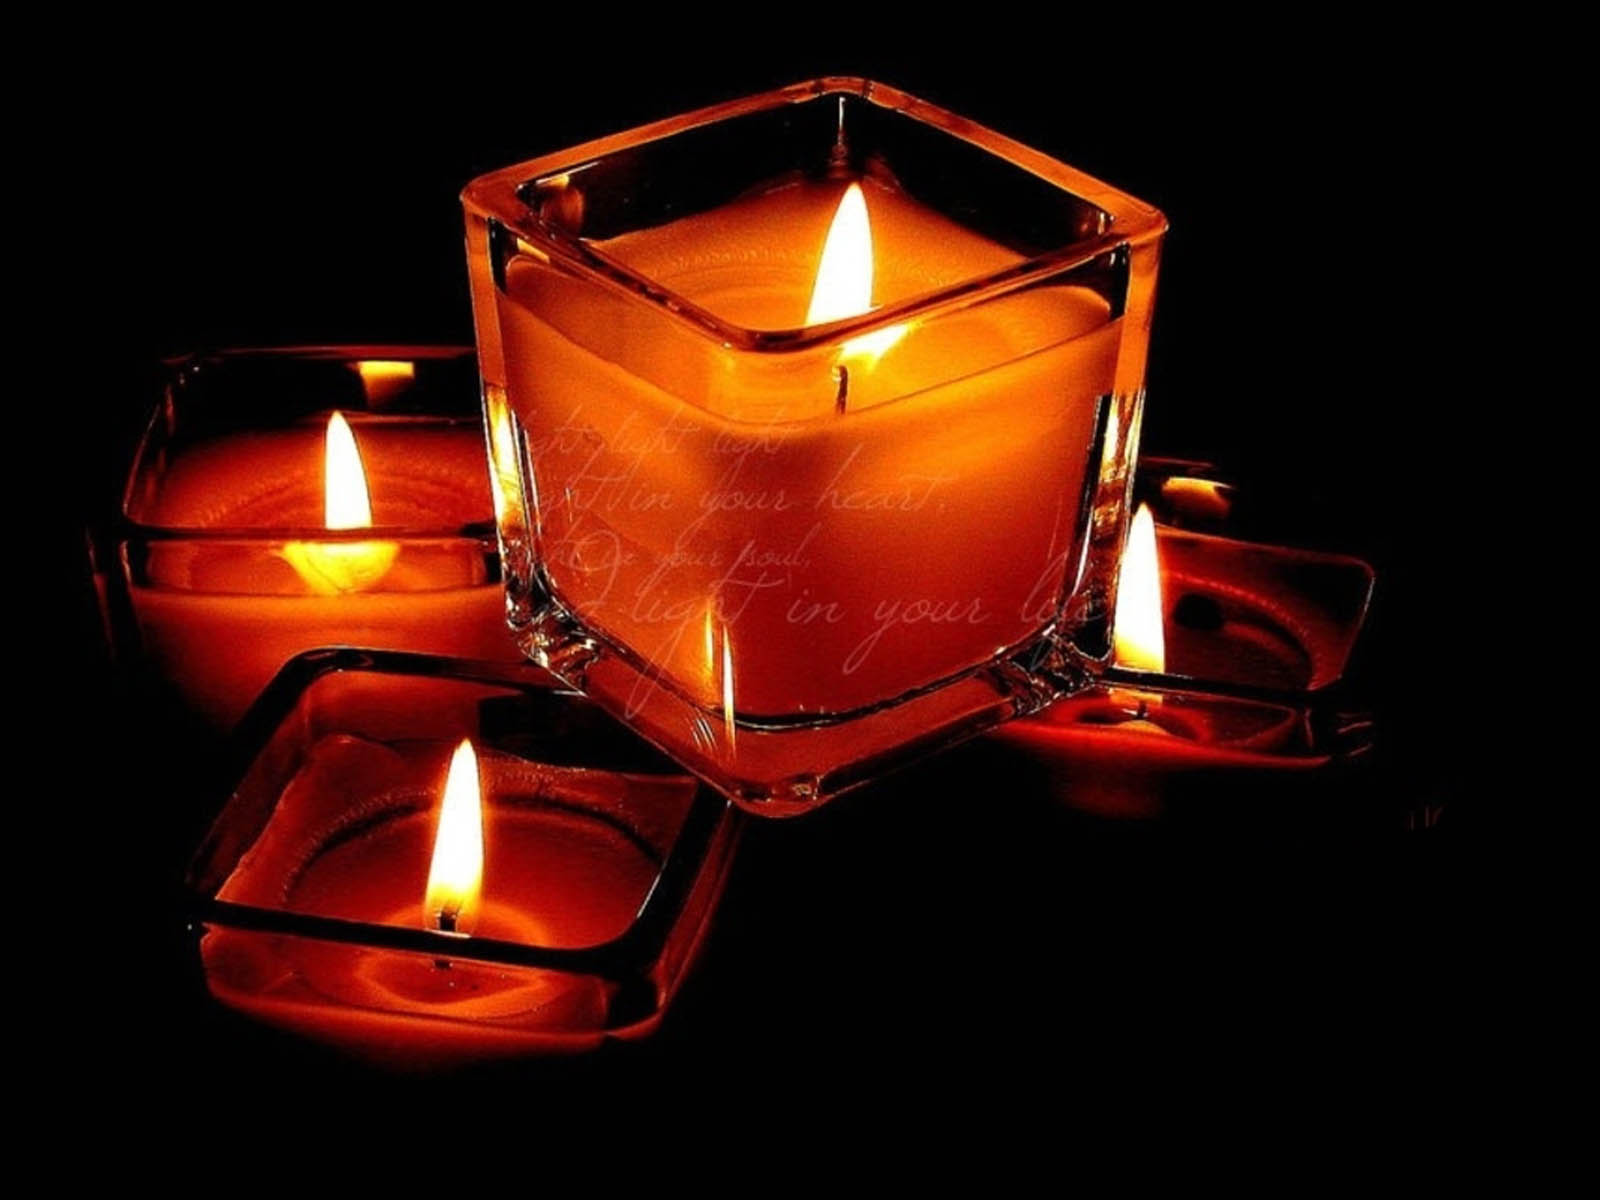 Wallpapers Candles Wallpapers